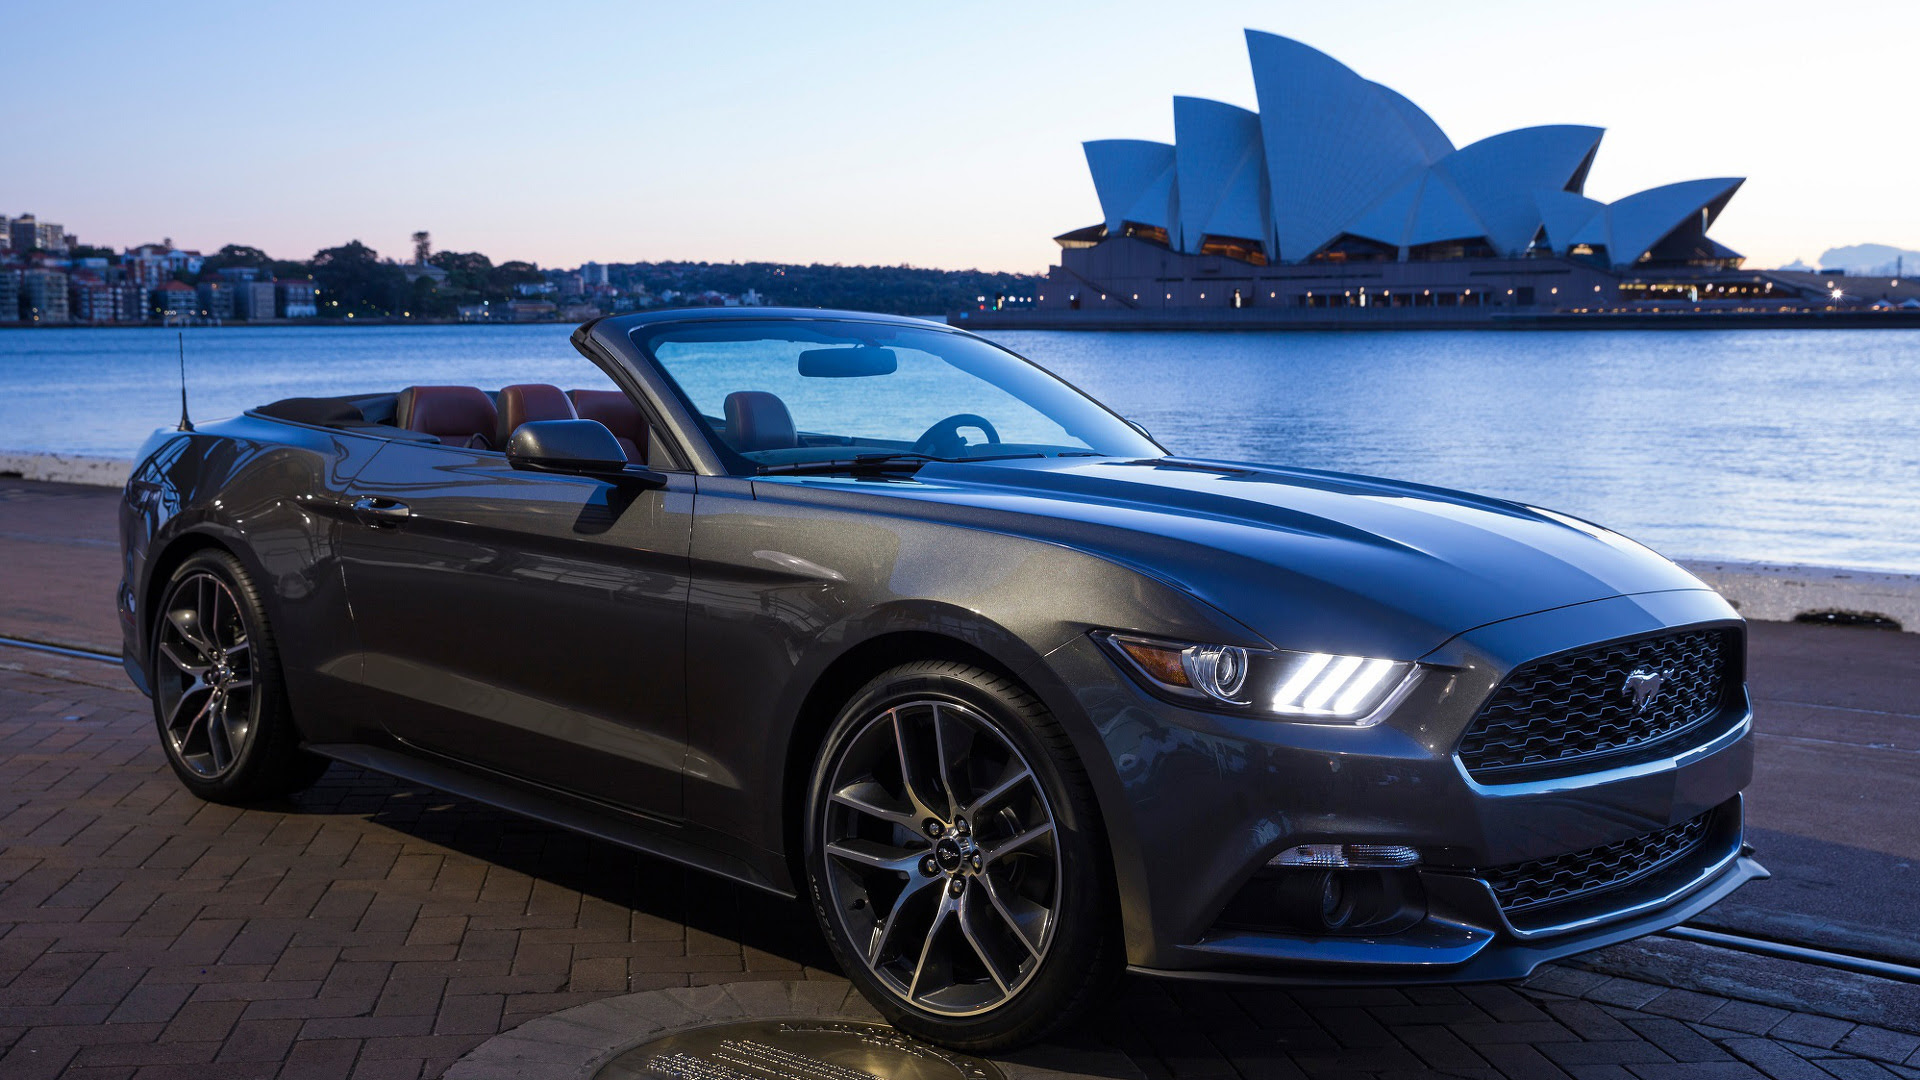 2018 ford mustang sports car ford we hear 2018 ford mustang axes v6 ...